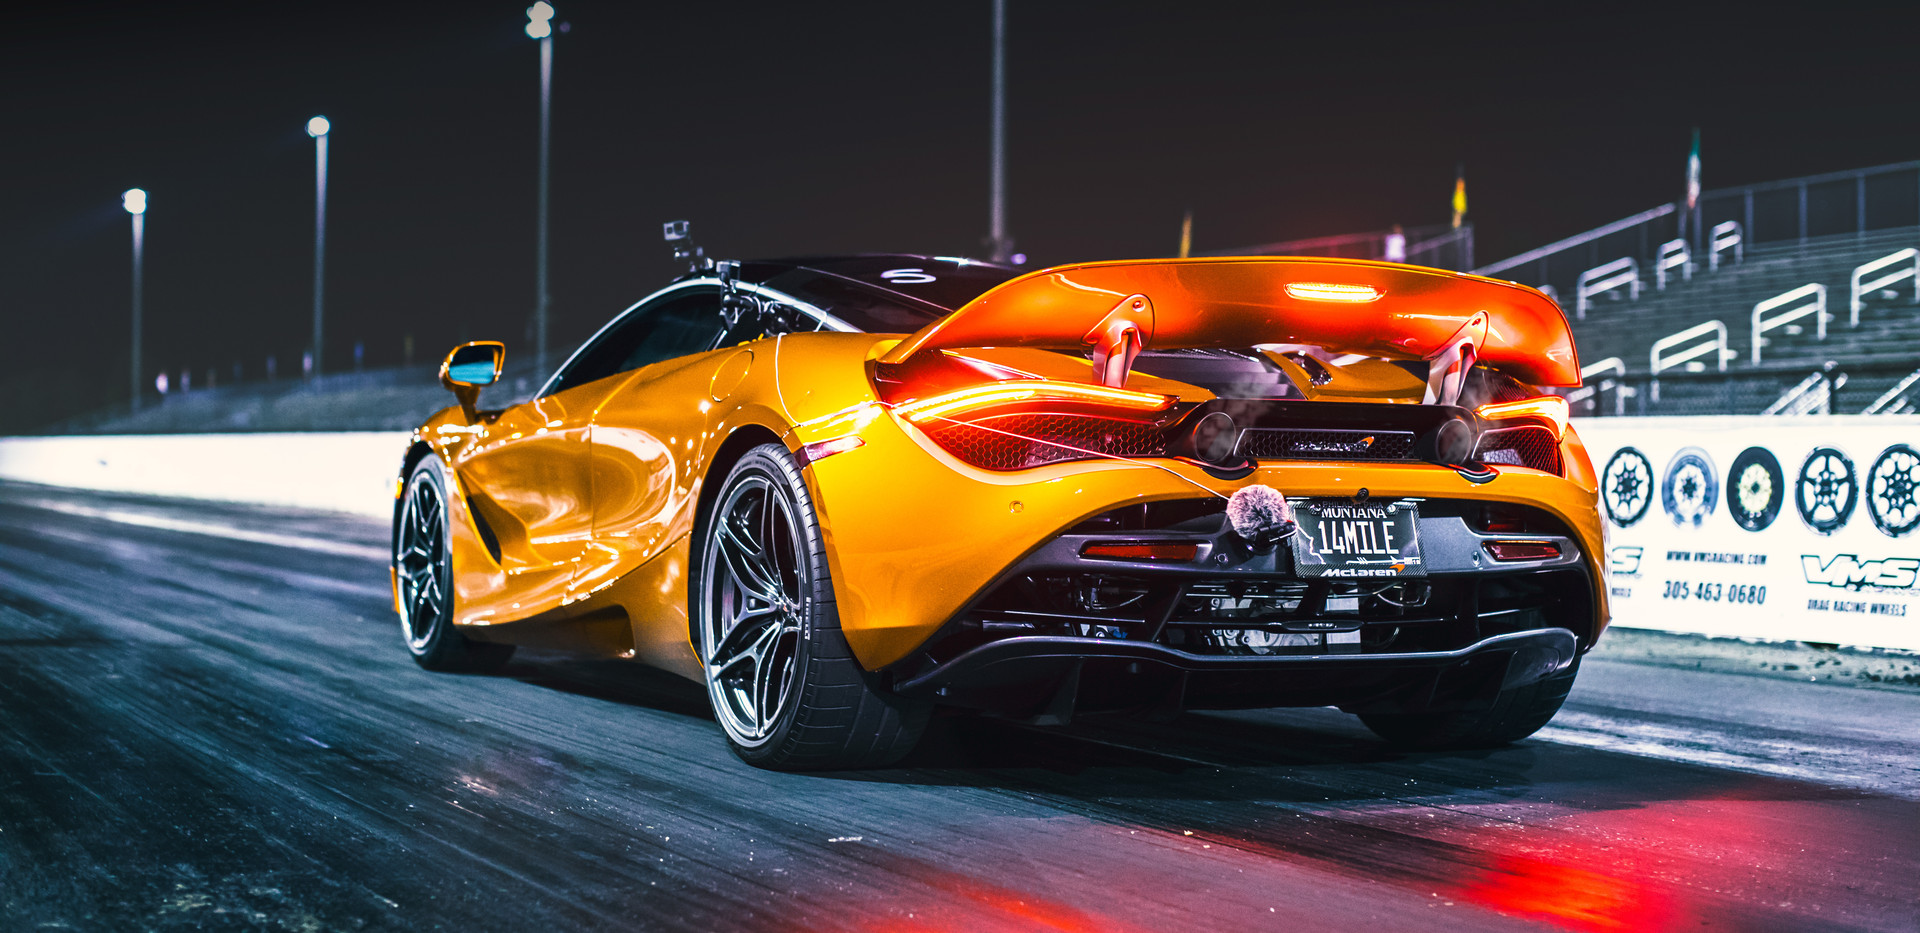 Mclaren_720S_Drag_Strip.jpg